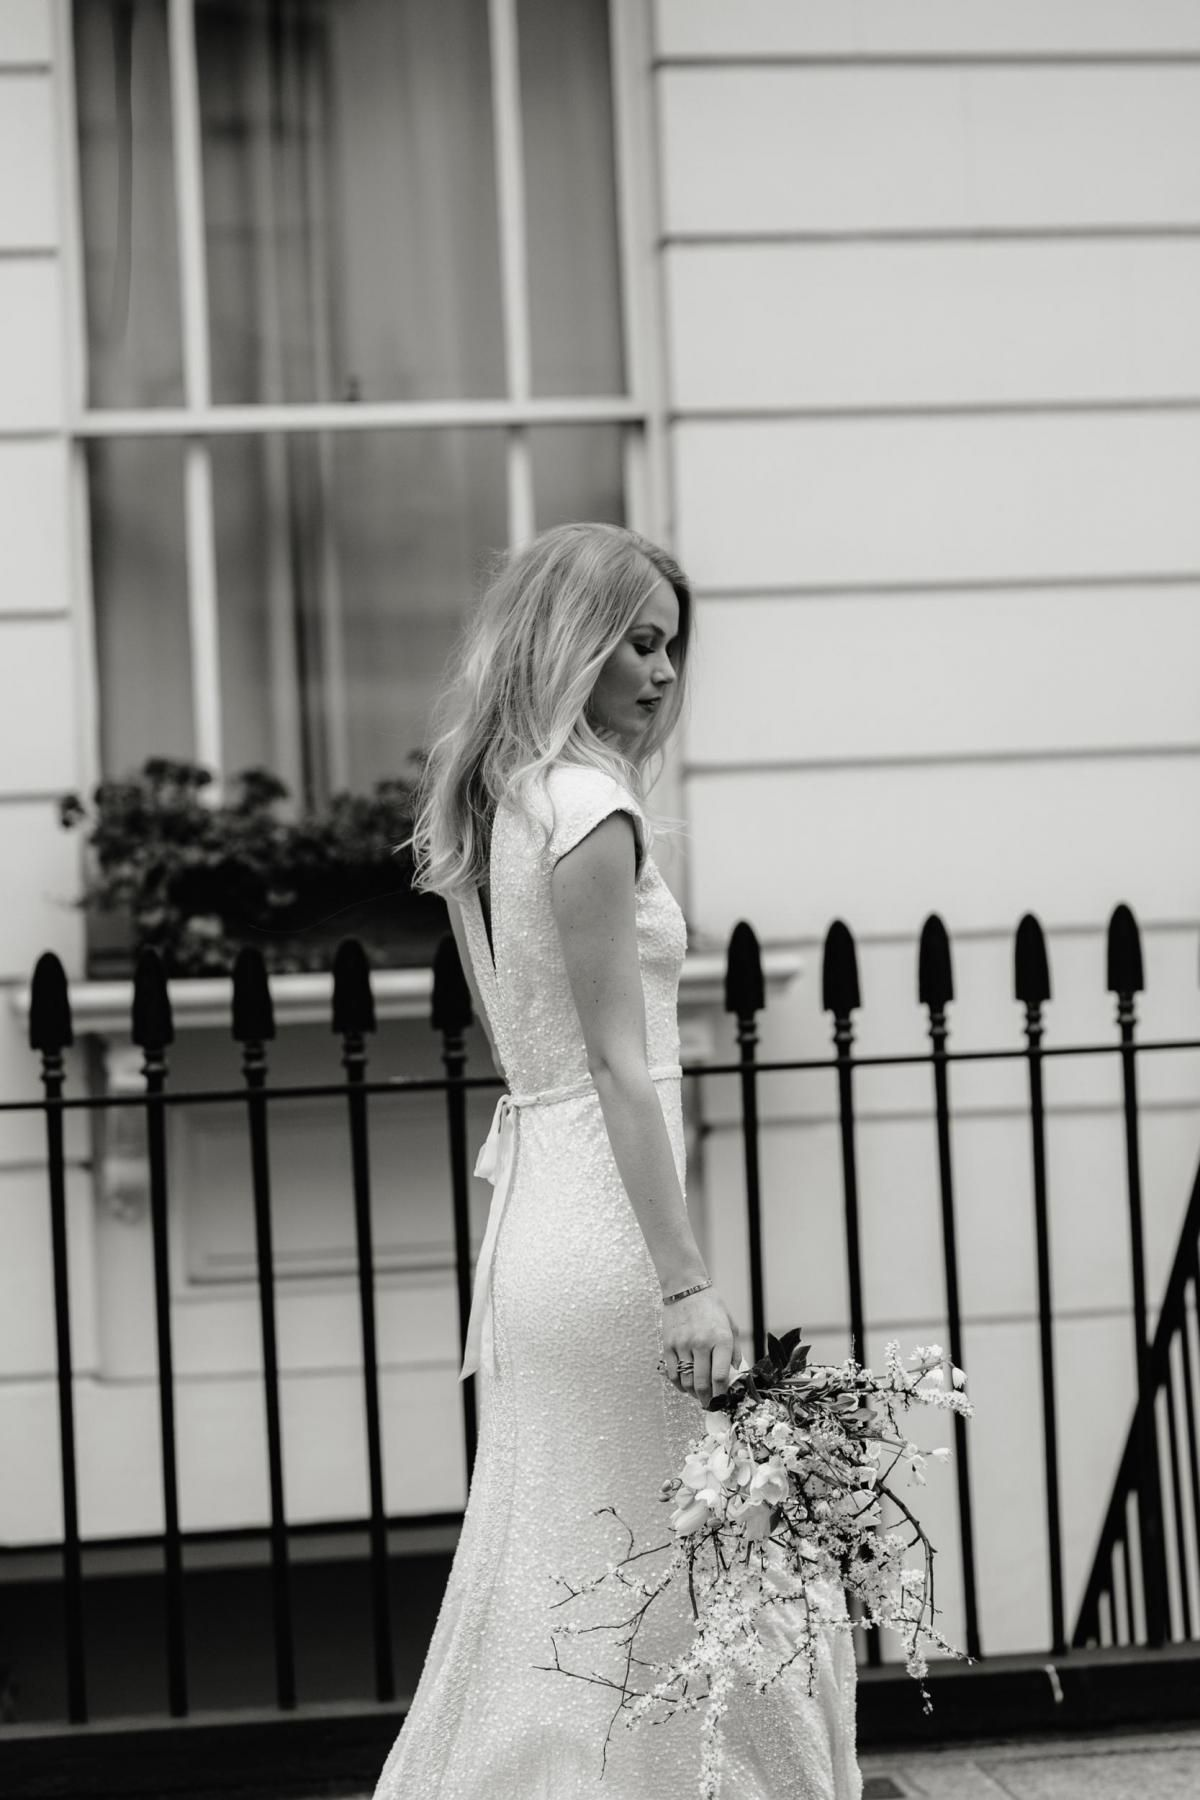 The Annette gown by Karen Willis Holmes, shimmer fit and flare wedding dress.